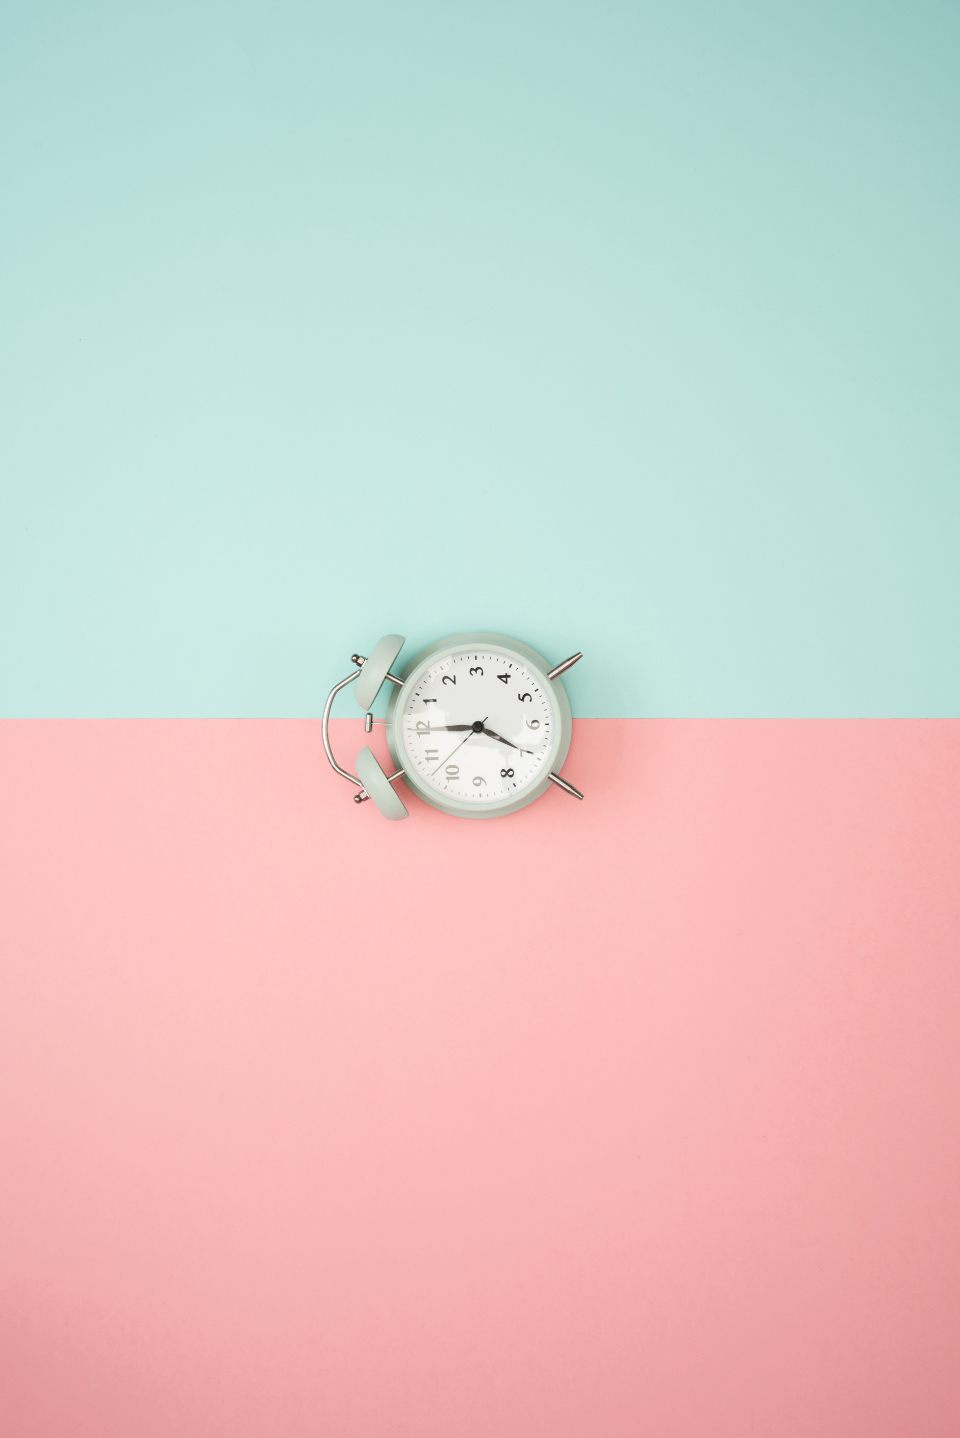 Trending Wallpapers For Iphone X Free Photo Of Clock Pastel Background Blue Stocksnap Io